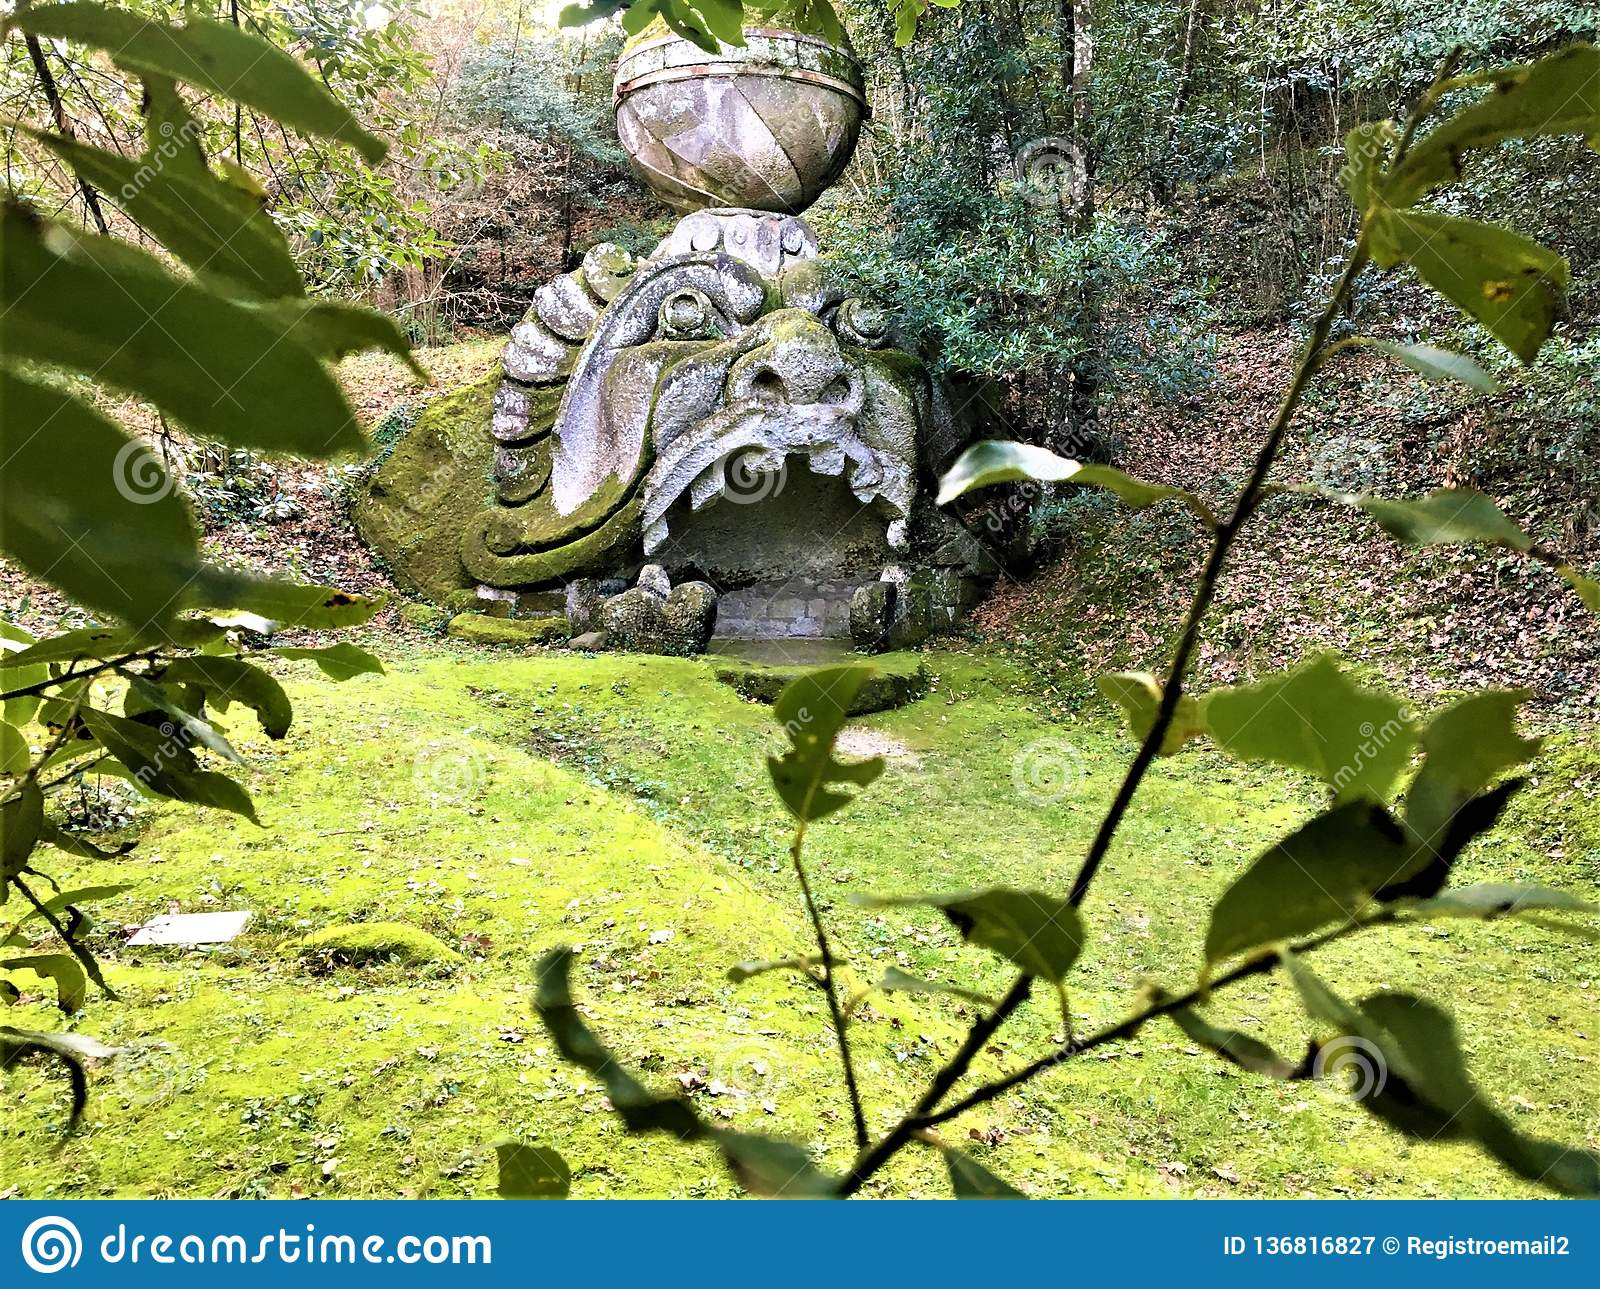 Park of the Monsters, Sacred Grove, Garden of Bomarzo. Proteus Glaucus and alchemy